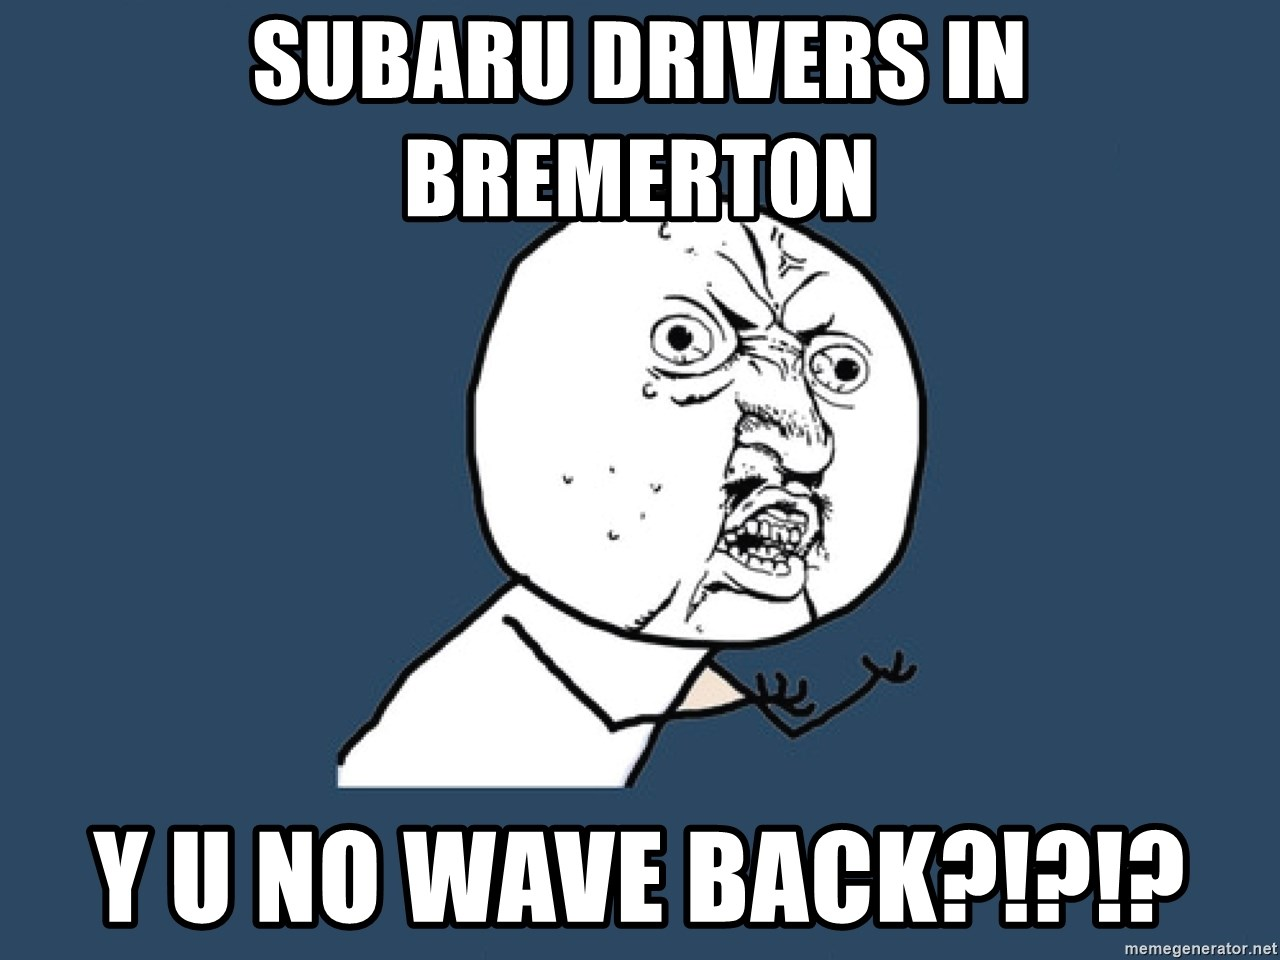 Subaru drivers in bremerton y u no wave back?!?!? - Y U No